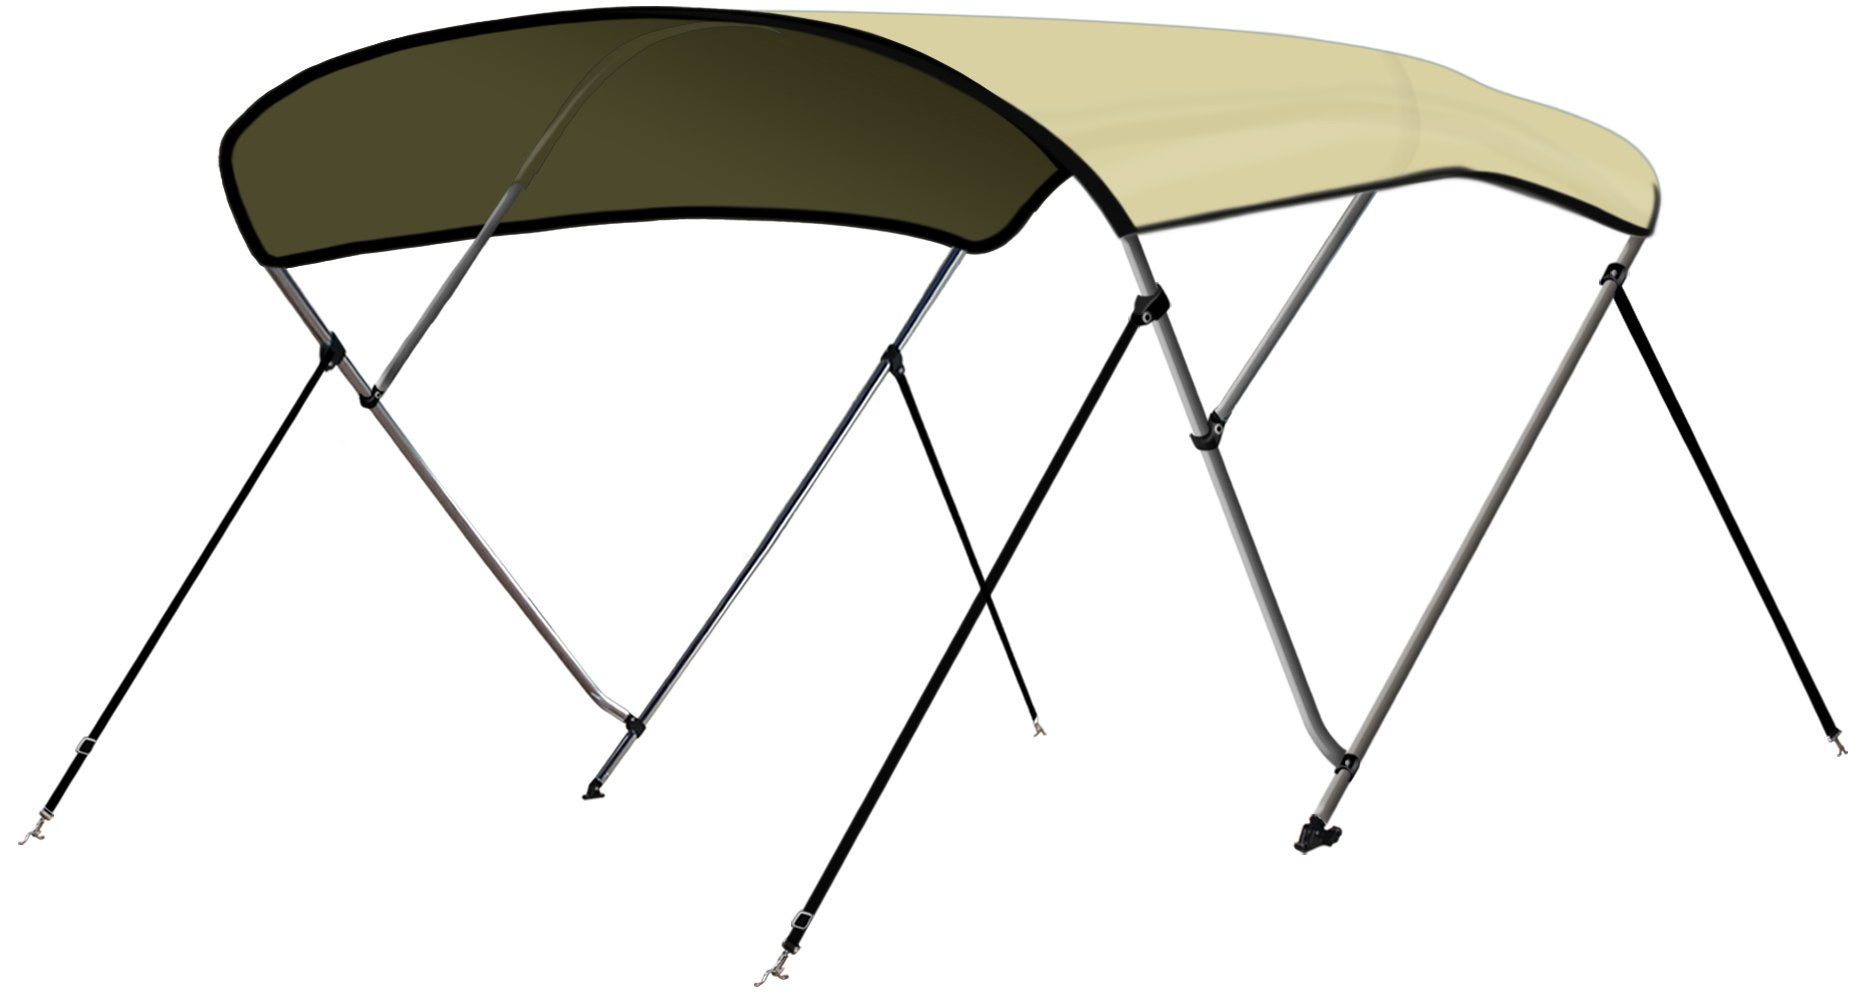 Leader Accessories 3 Bow Sand 6'L x 46'' H x 54''-60'' W Bimini Top Boat Cover 4 Straps for Front and Rear Includes Mounting Hardwares with 1 Inch Aluminum Frame